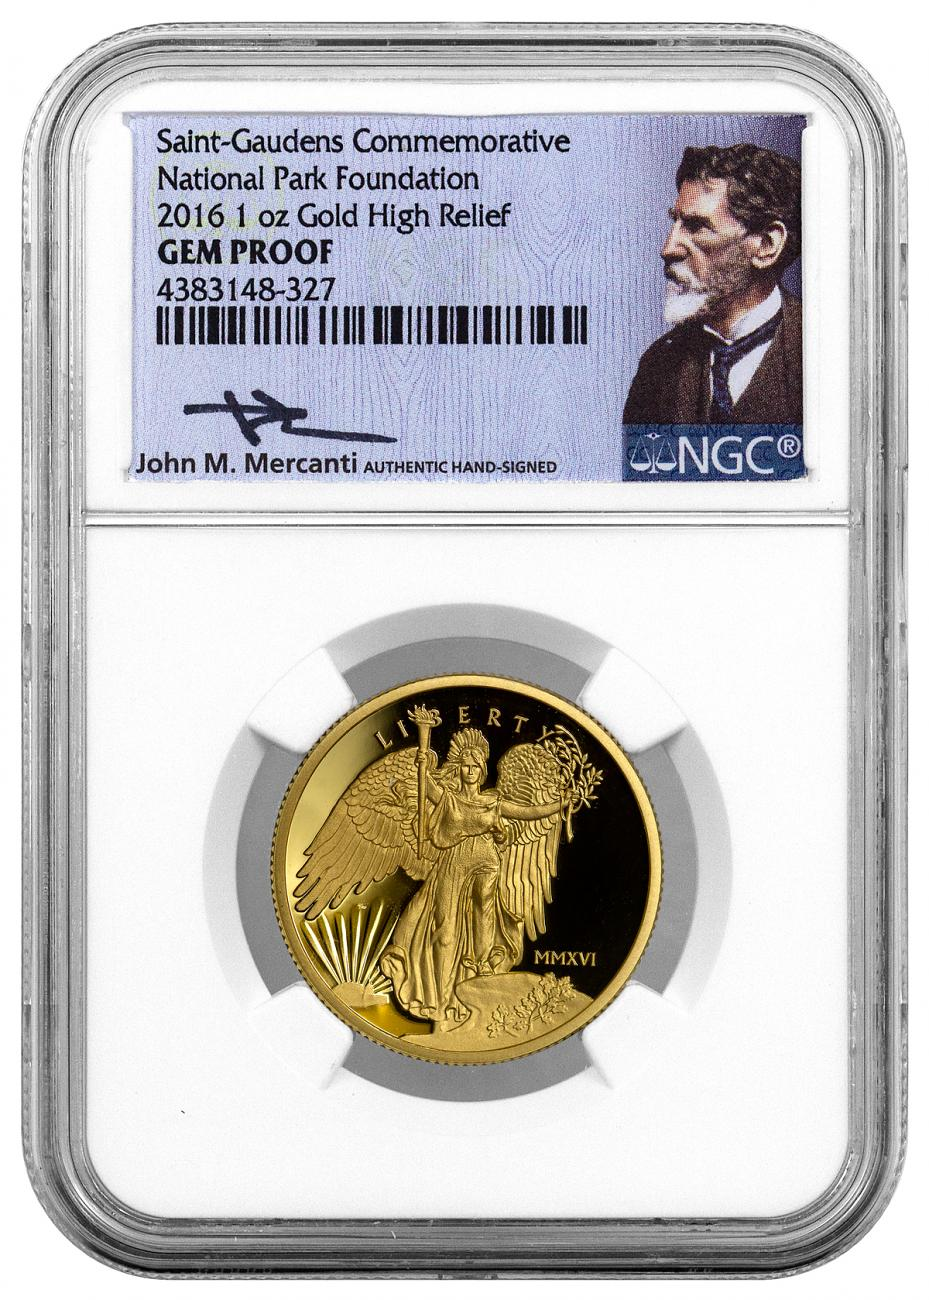 2016 United States Saint-Gaudens Winged Liberty High Relief 1 oz Gold Proof Medal NGC GEM Proof (Mercanti Signed Label)